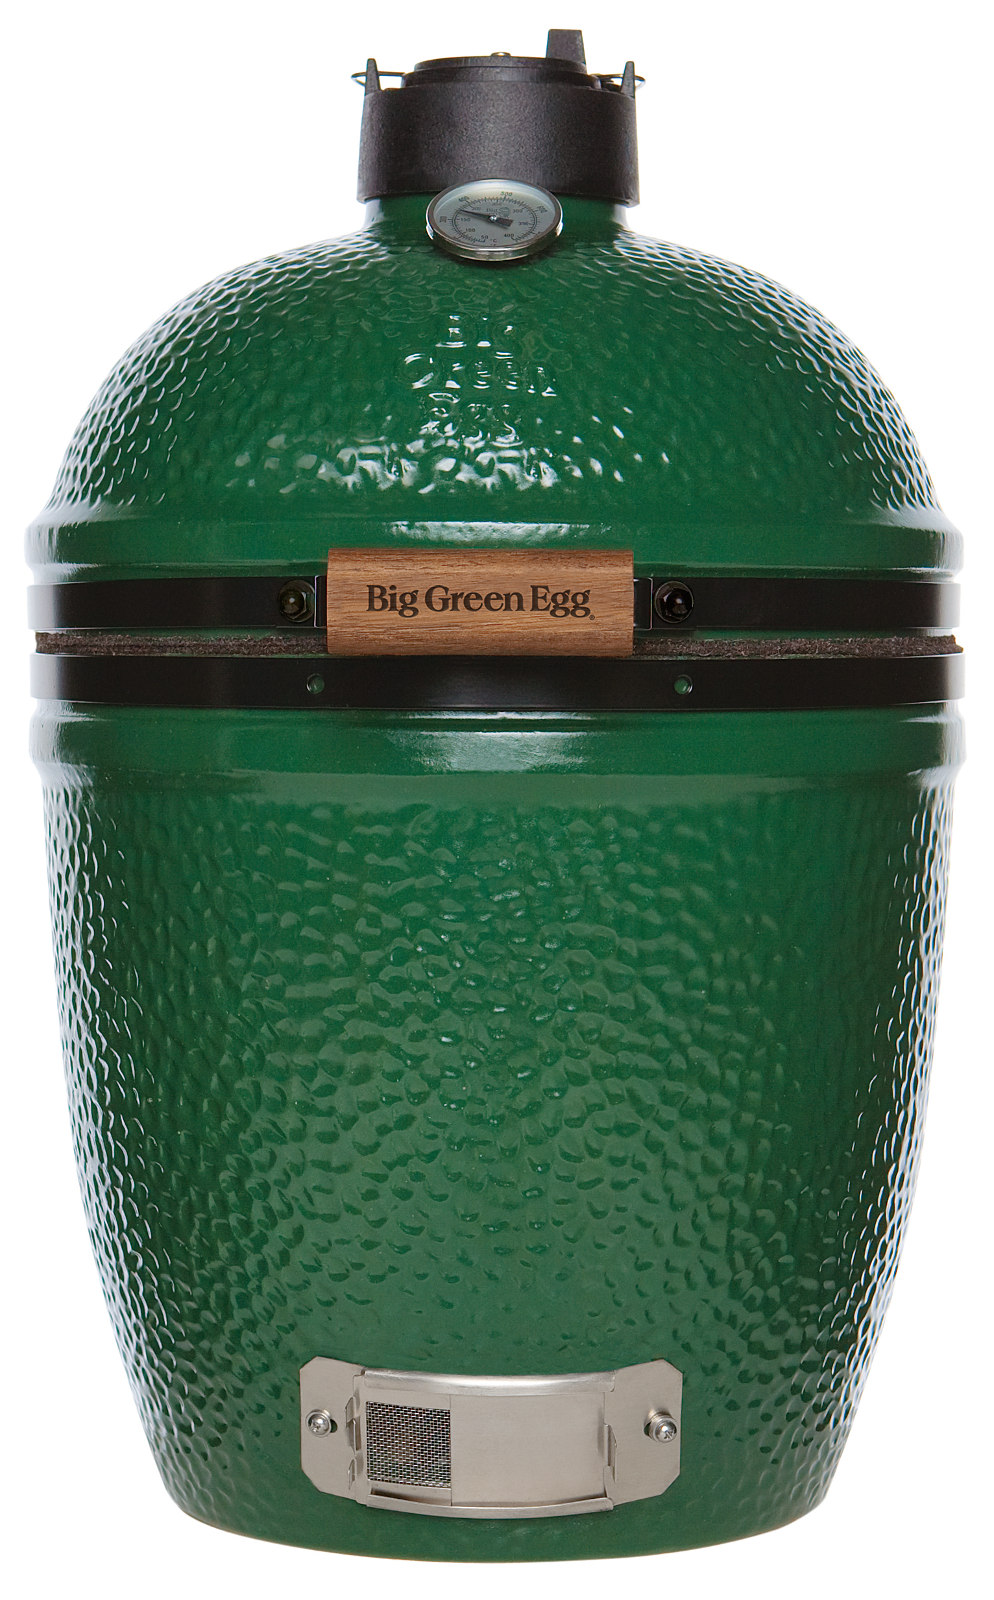 Hiiligrilli Big Green Egg Small